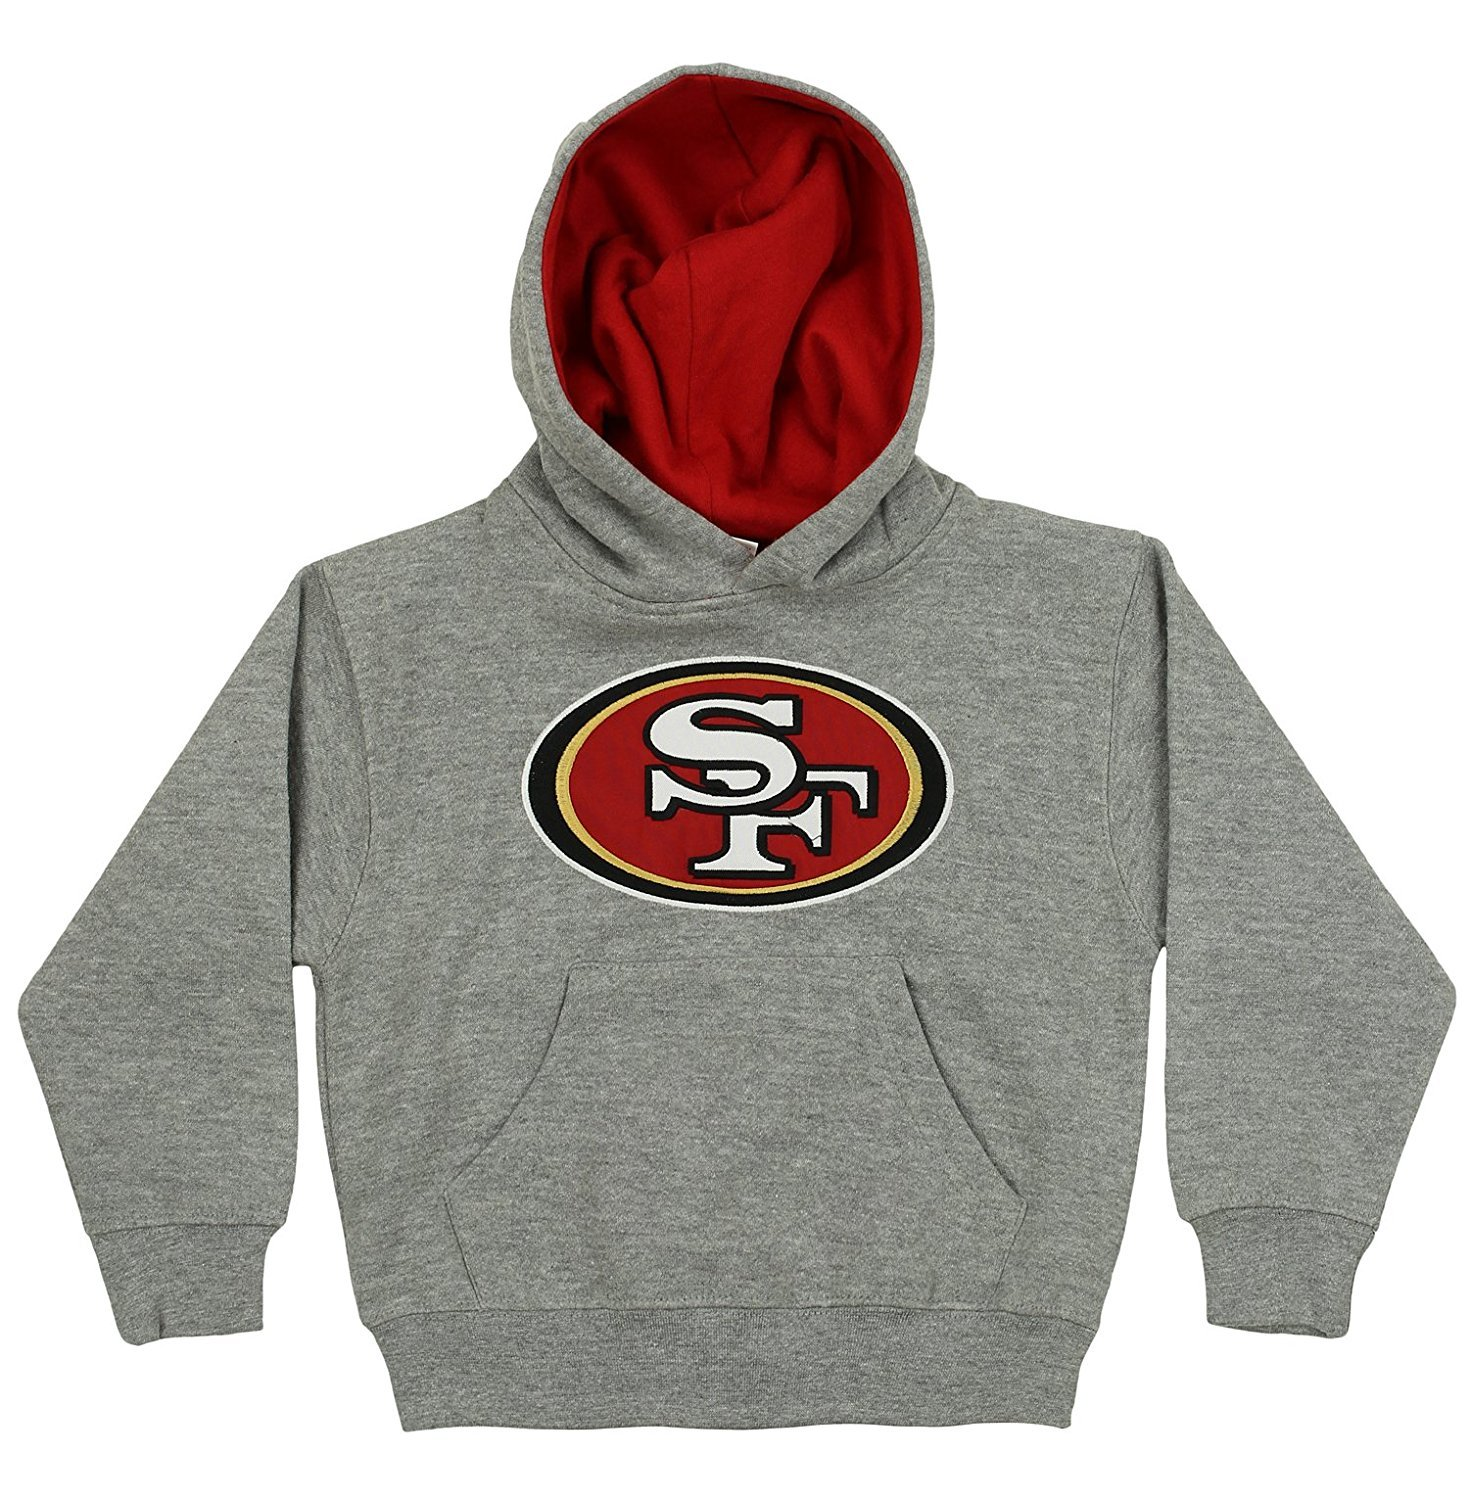 OuterStuff NFL Kids San Francisco 49ers Prime Pullover Hoodie, Gray